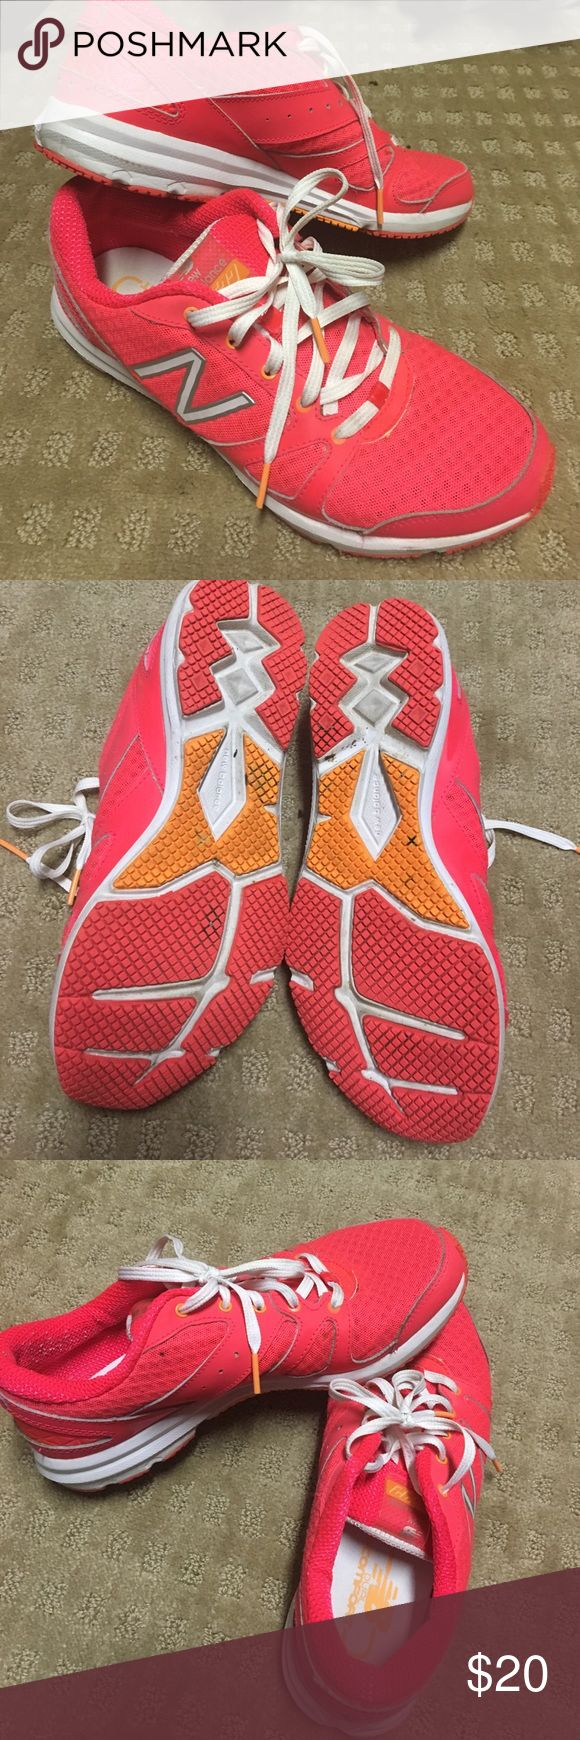 Pink new balance Size 8 barely worn new balance gym shoes. New Balance Shoes Athletic Shoes